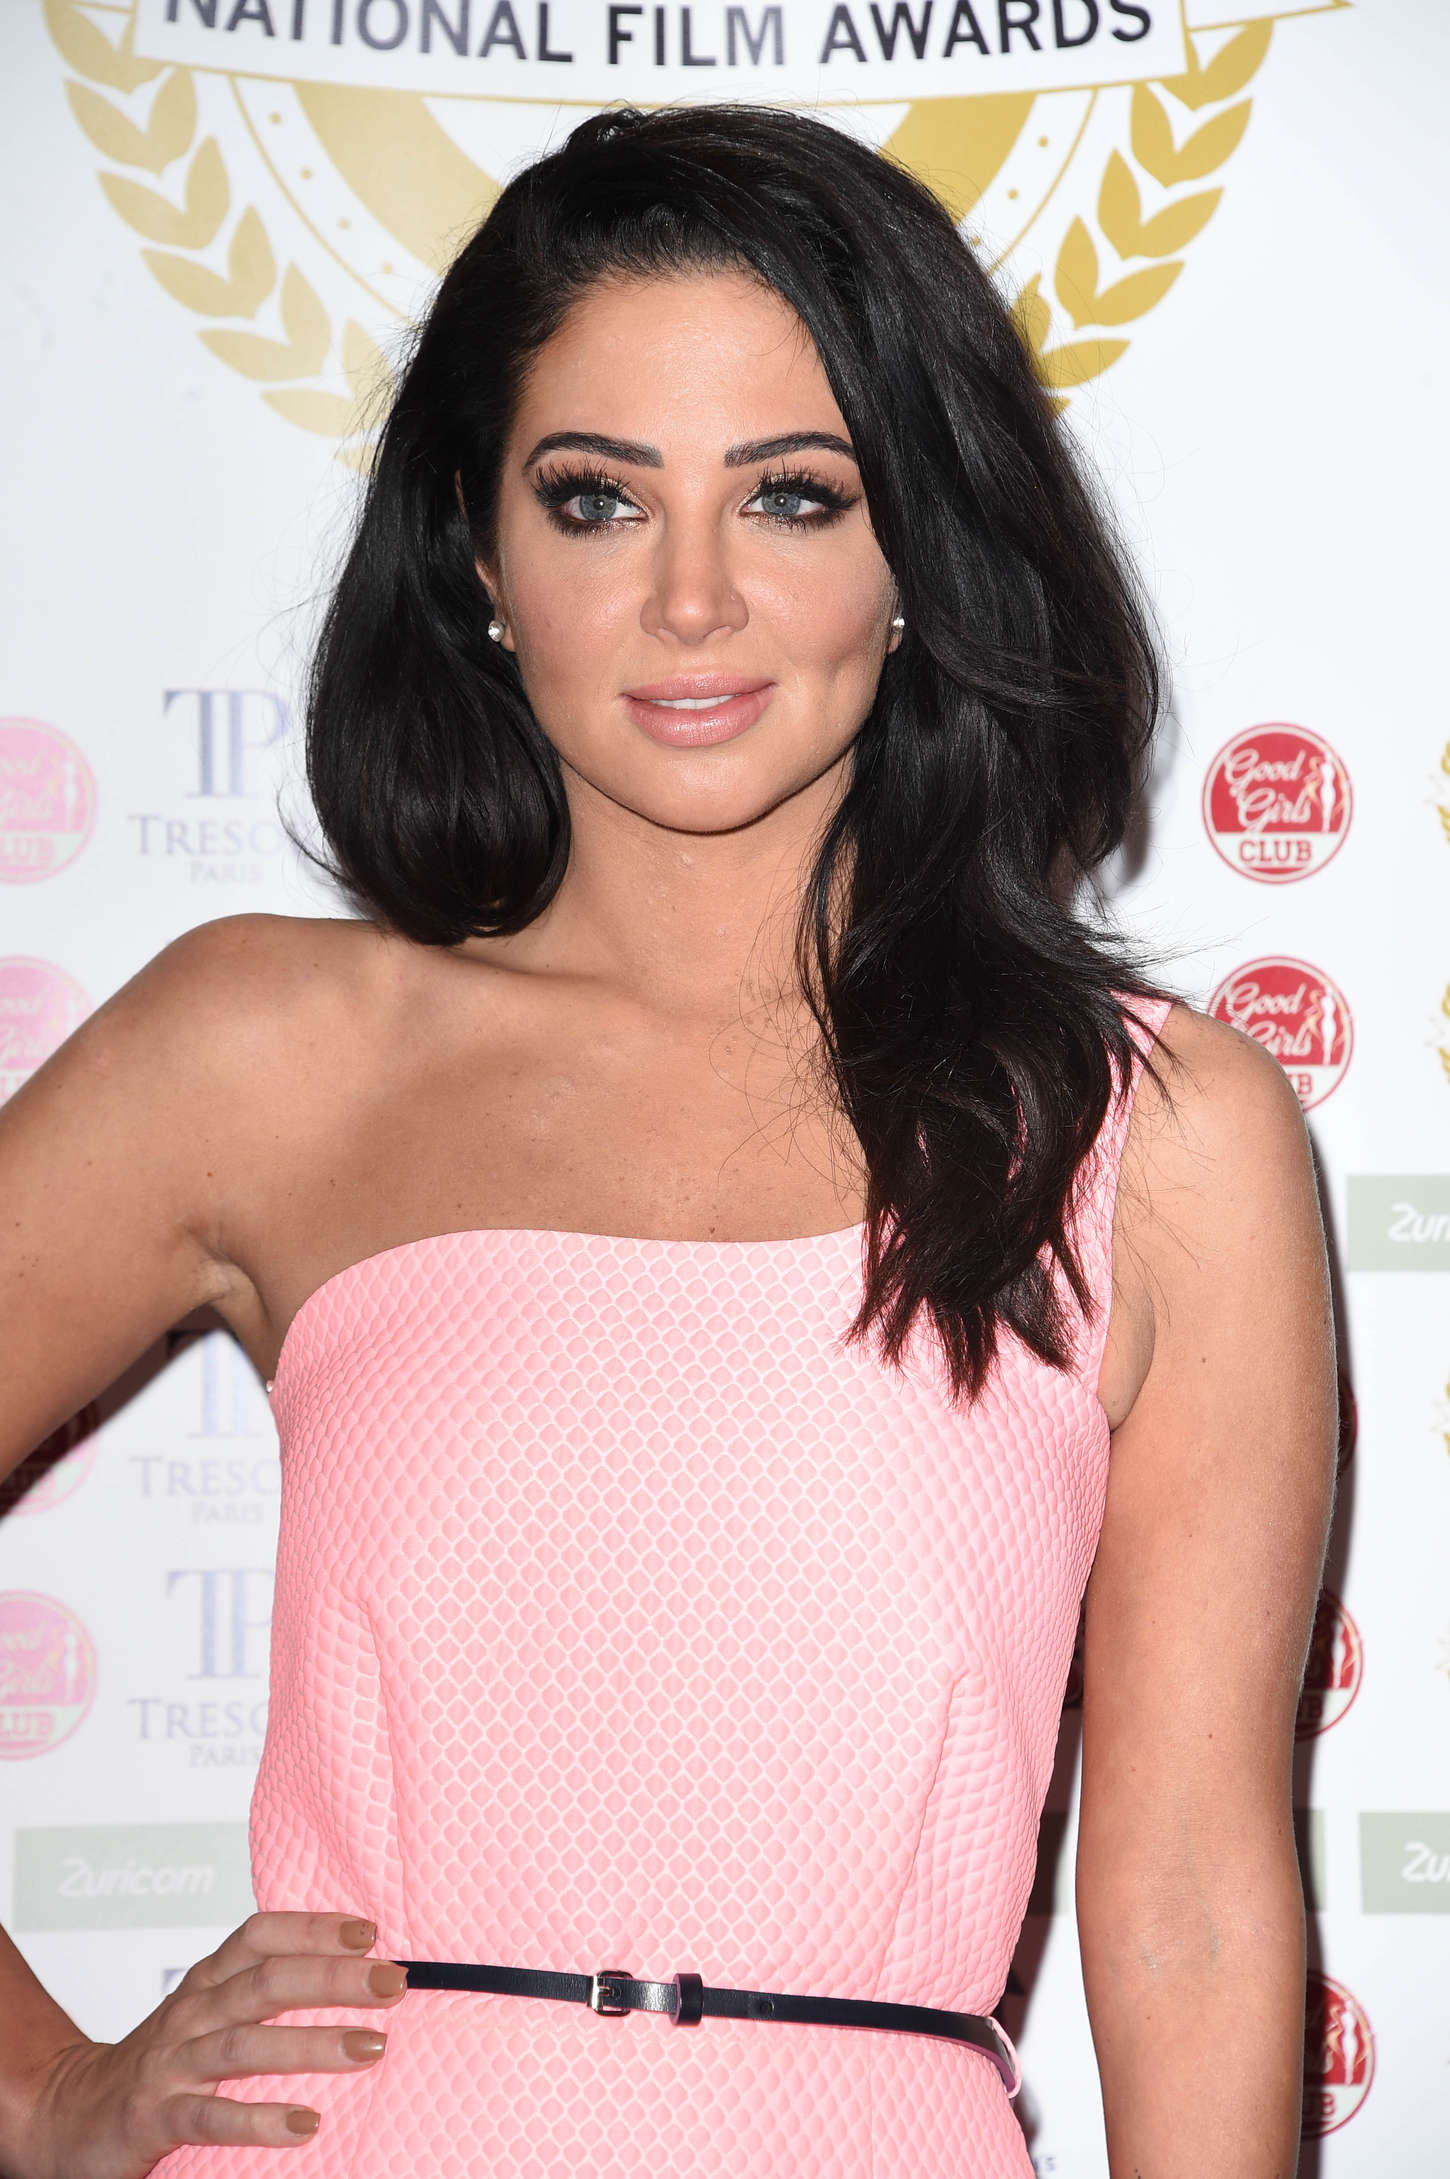 Tulisa Contostavlos The National Film Awards in London